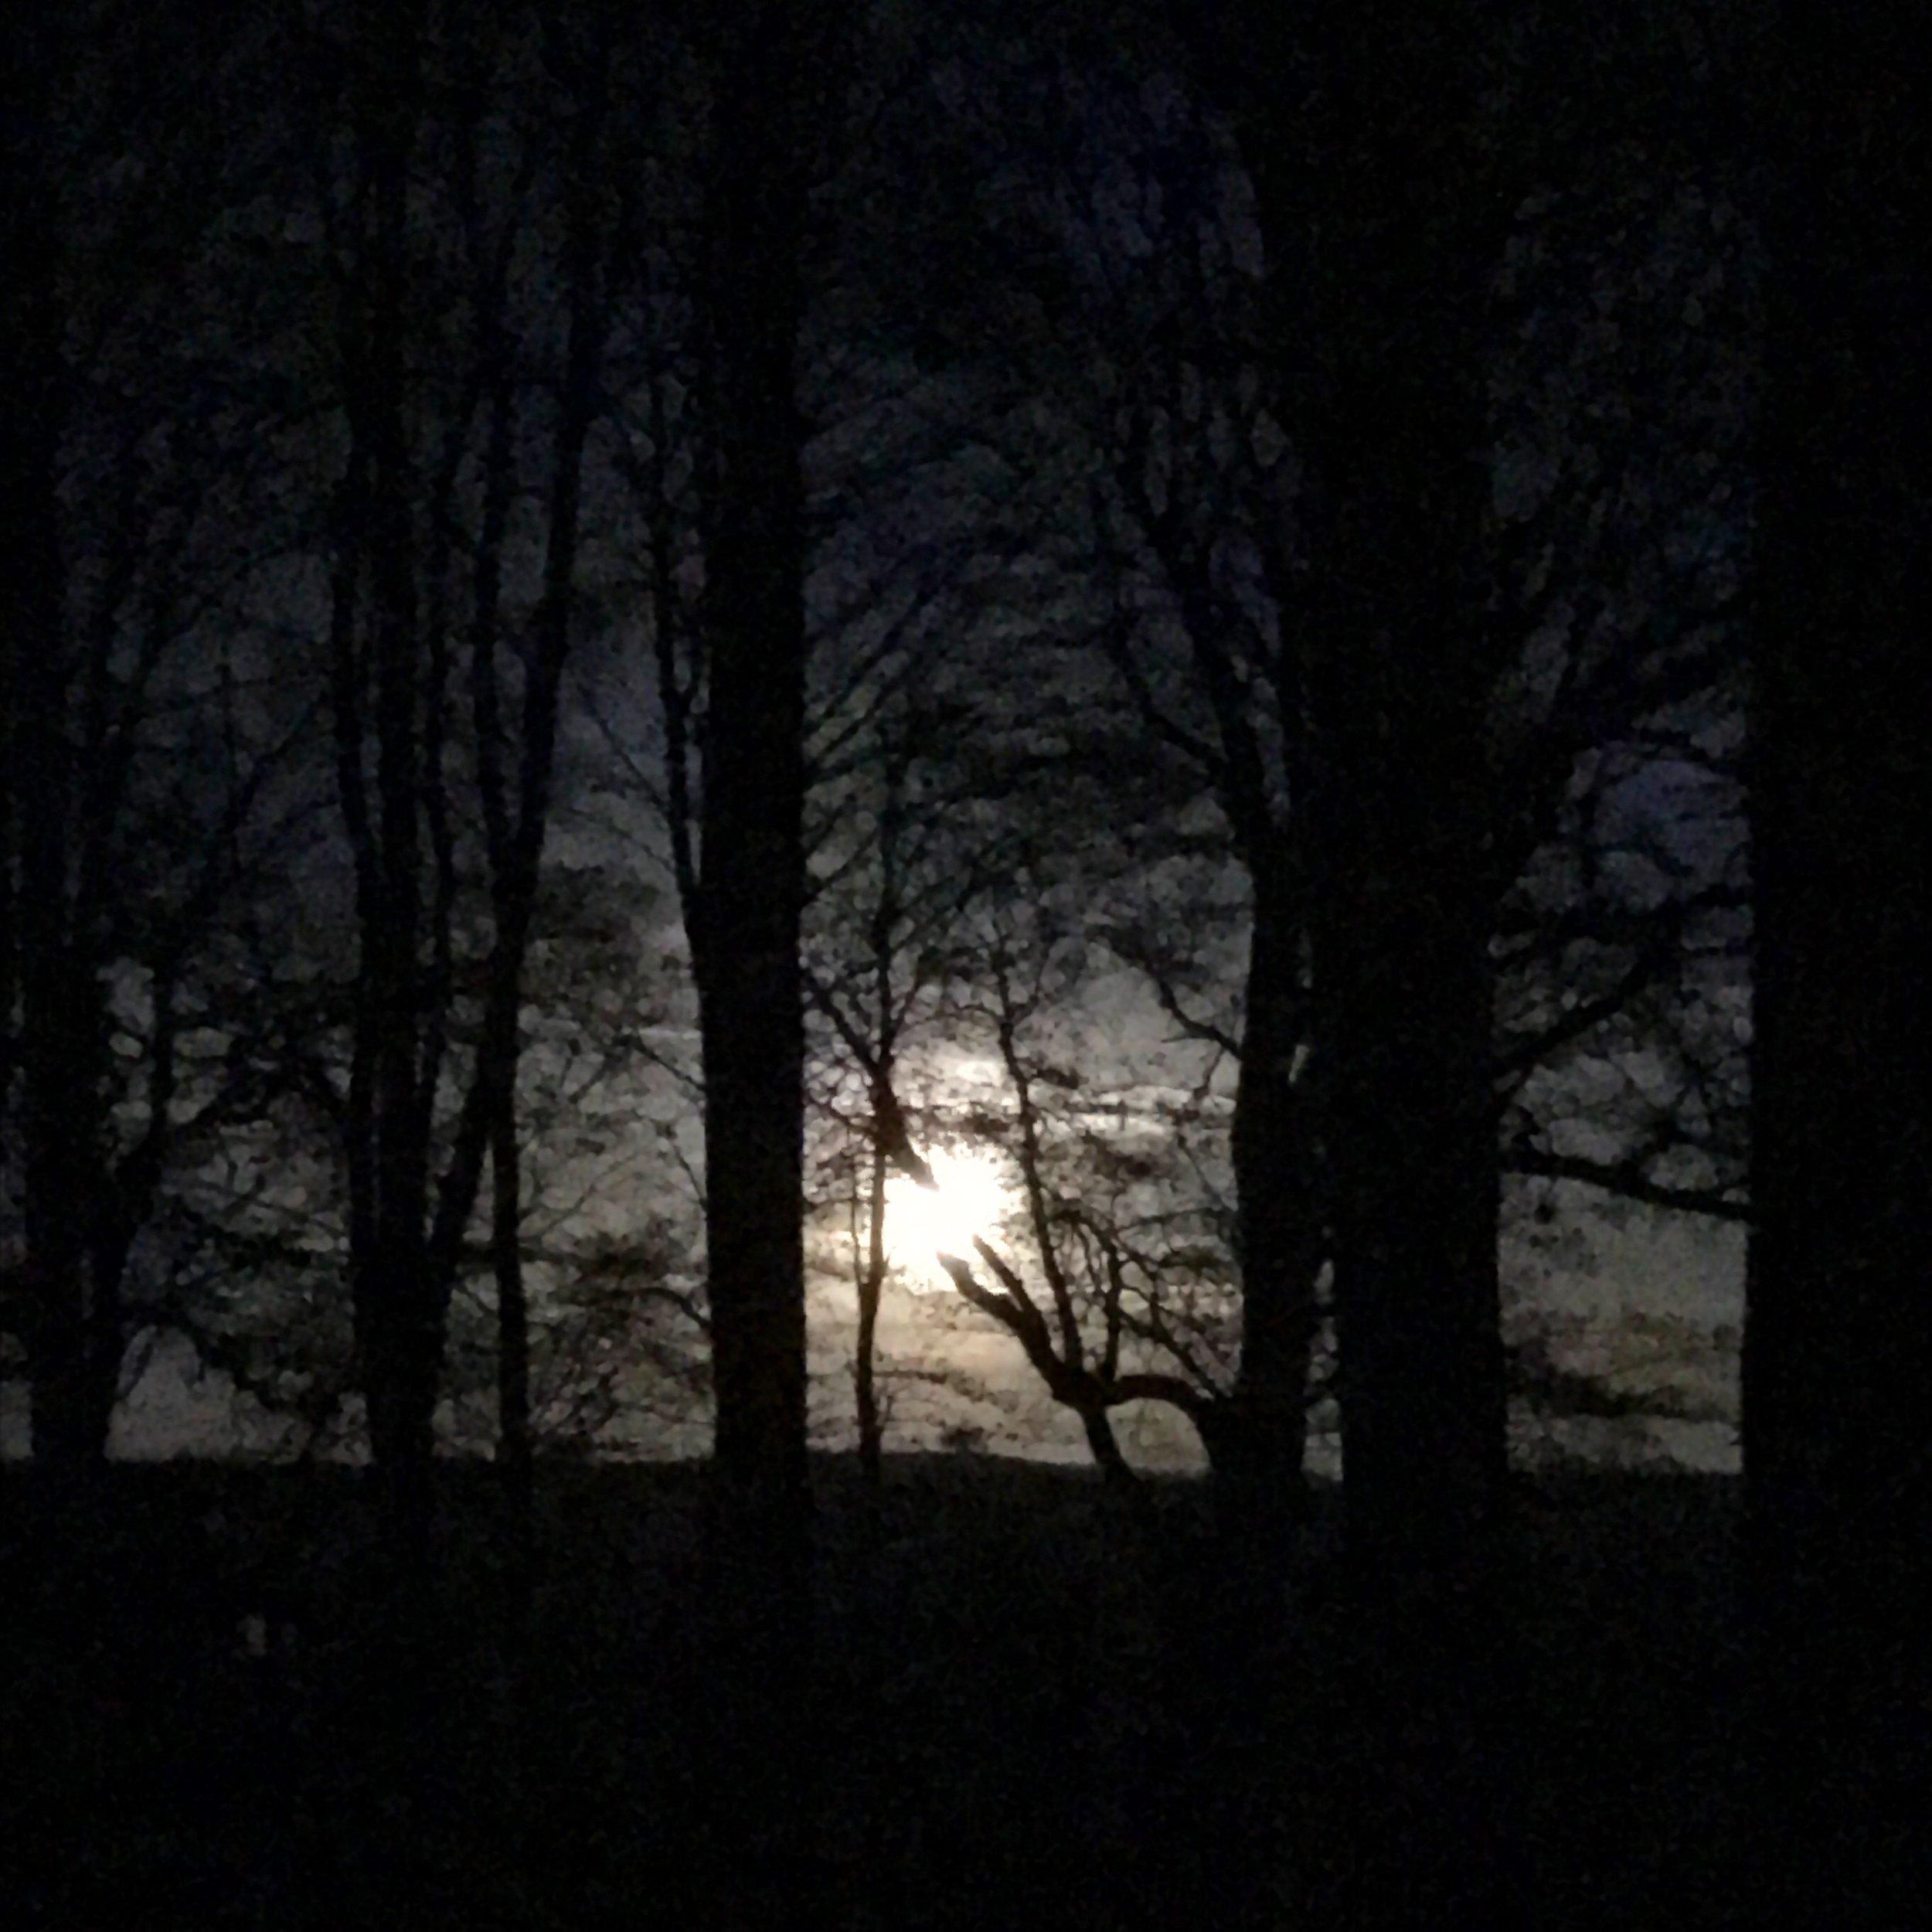 full moon energy through woodland